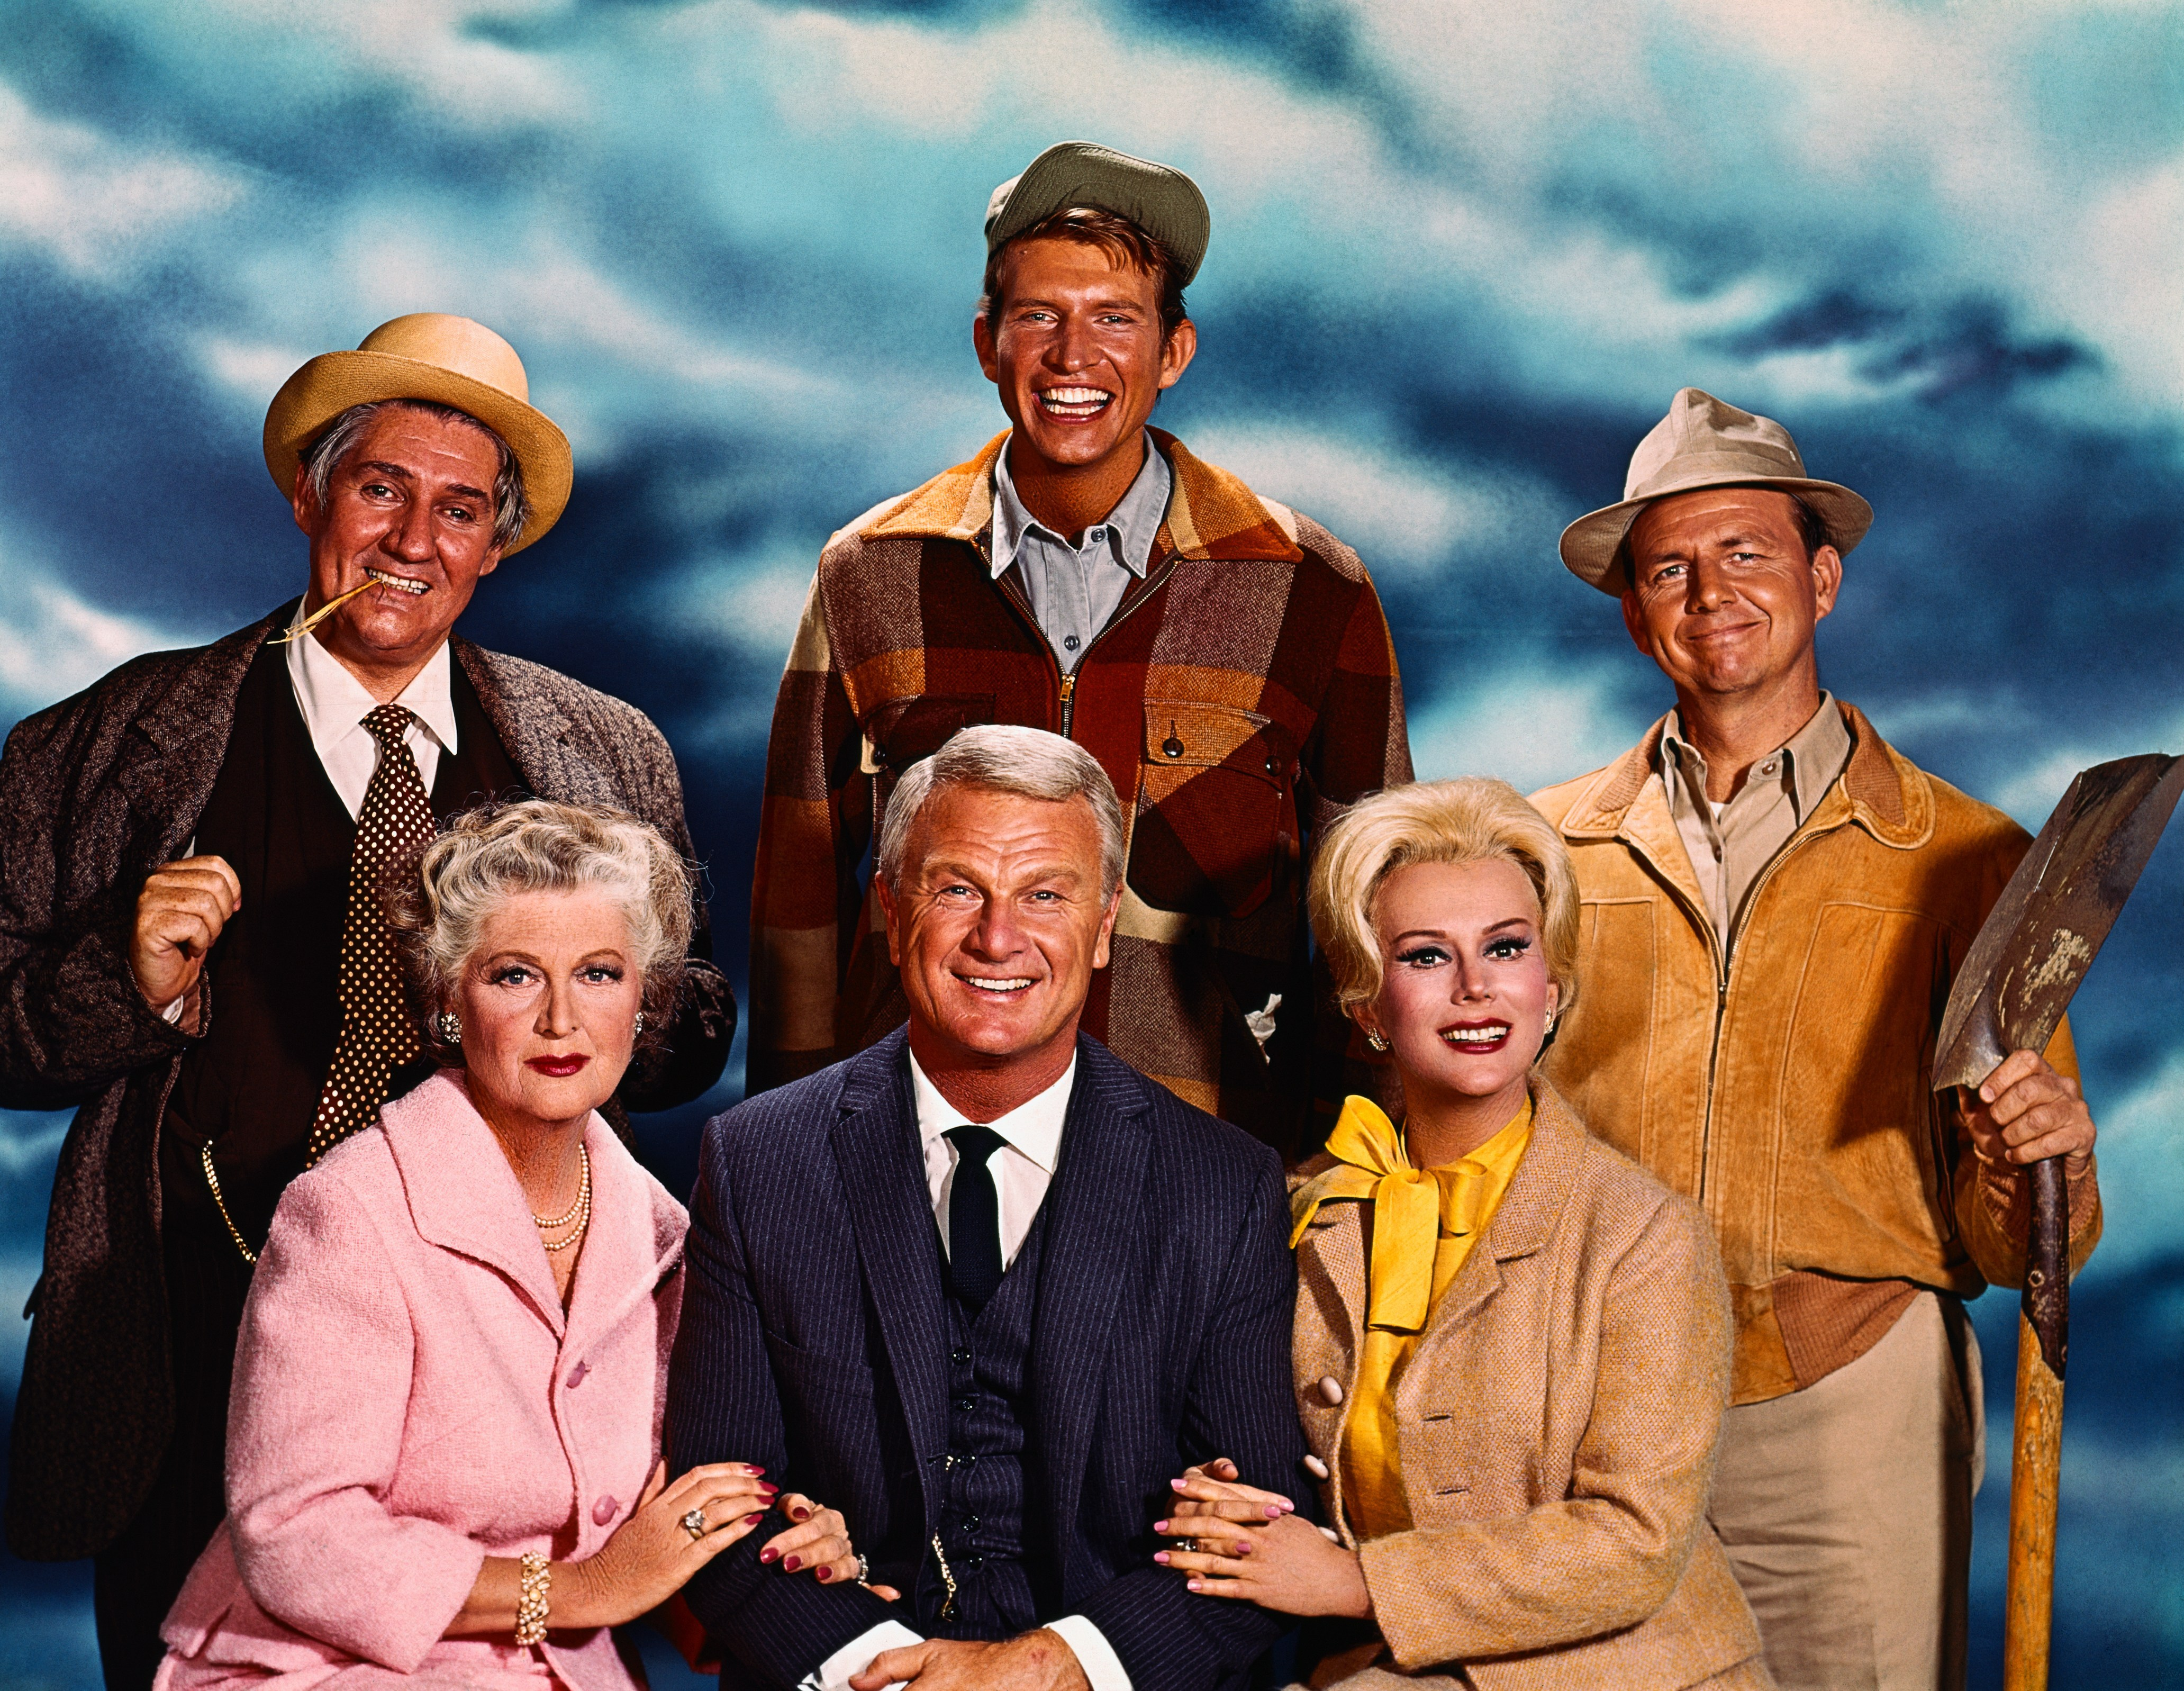 Green Acres actor Tom Lester dies aged 81